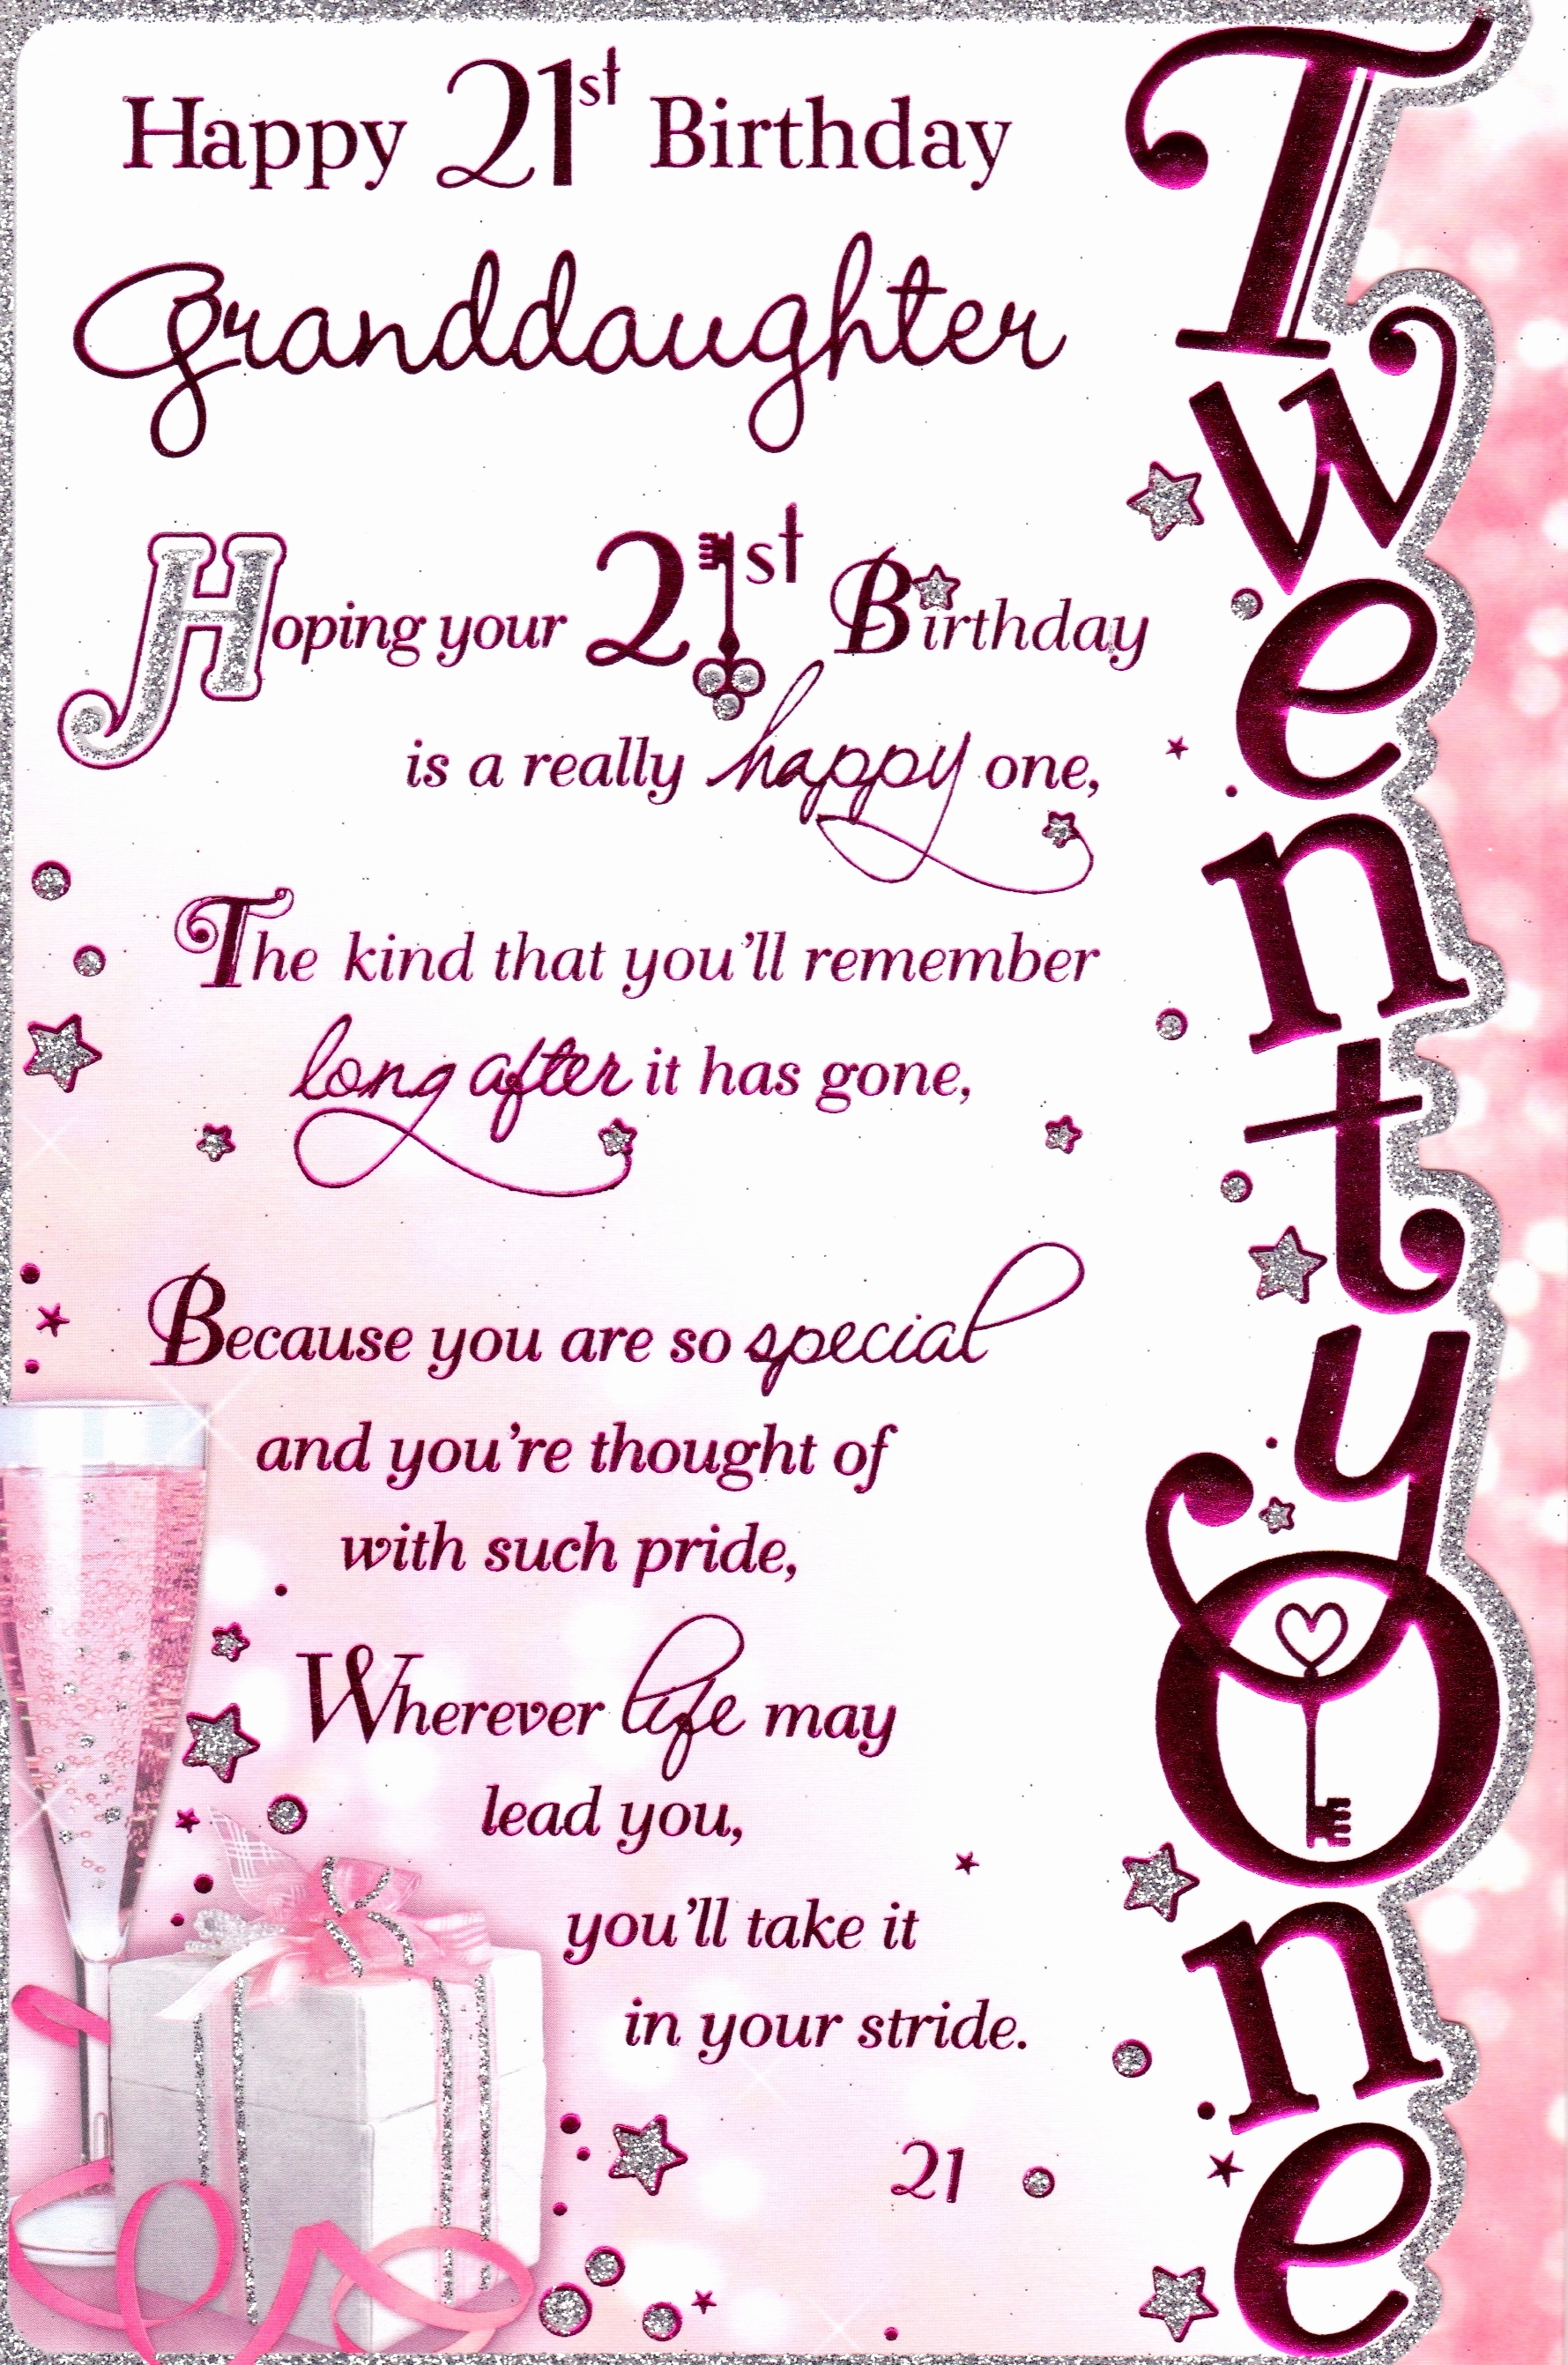 girlfriend 21st birthday card message ; 21st-birthday-card-messages-inspirational-happy-birthday-2-year-old-quotes-awesome-43-beautiful-image-21st-of-21st-birthday-card-messages